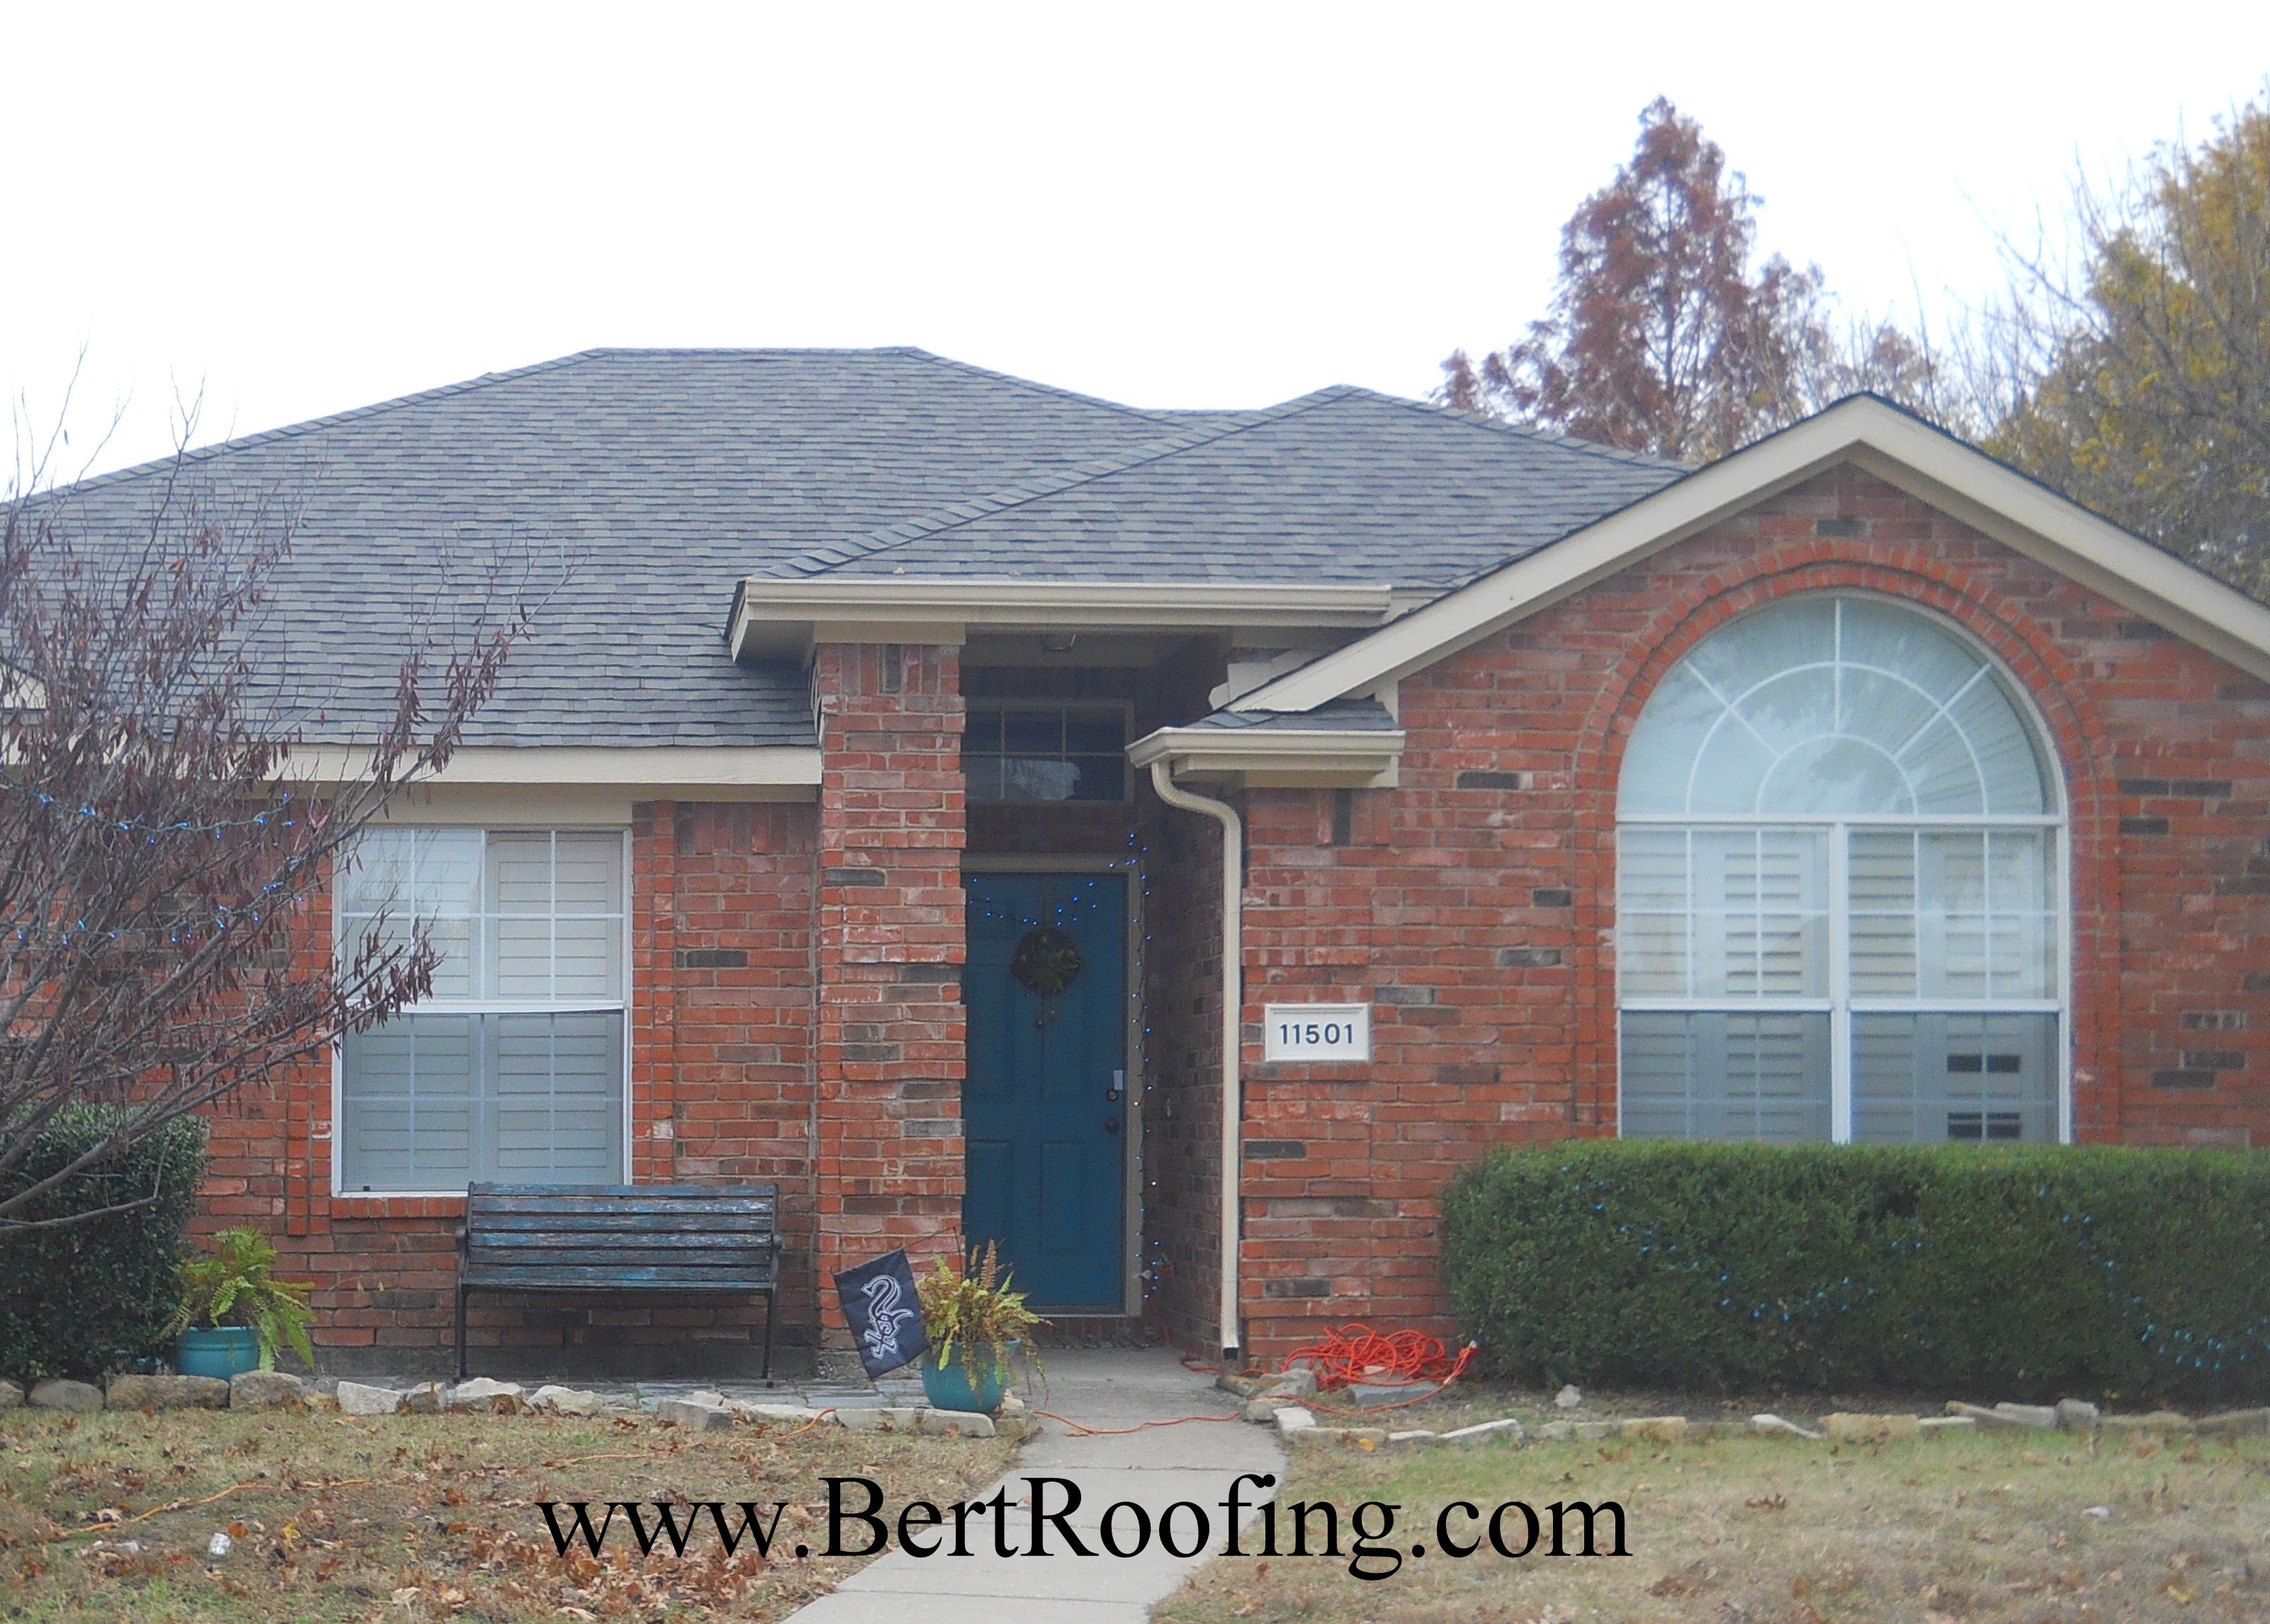 Best Pin By Bert Roofing Inc On Certainteed Roofs Installed 640 x 480